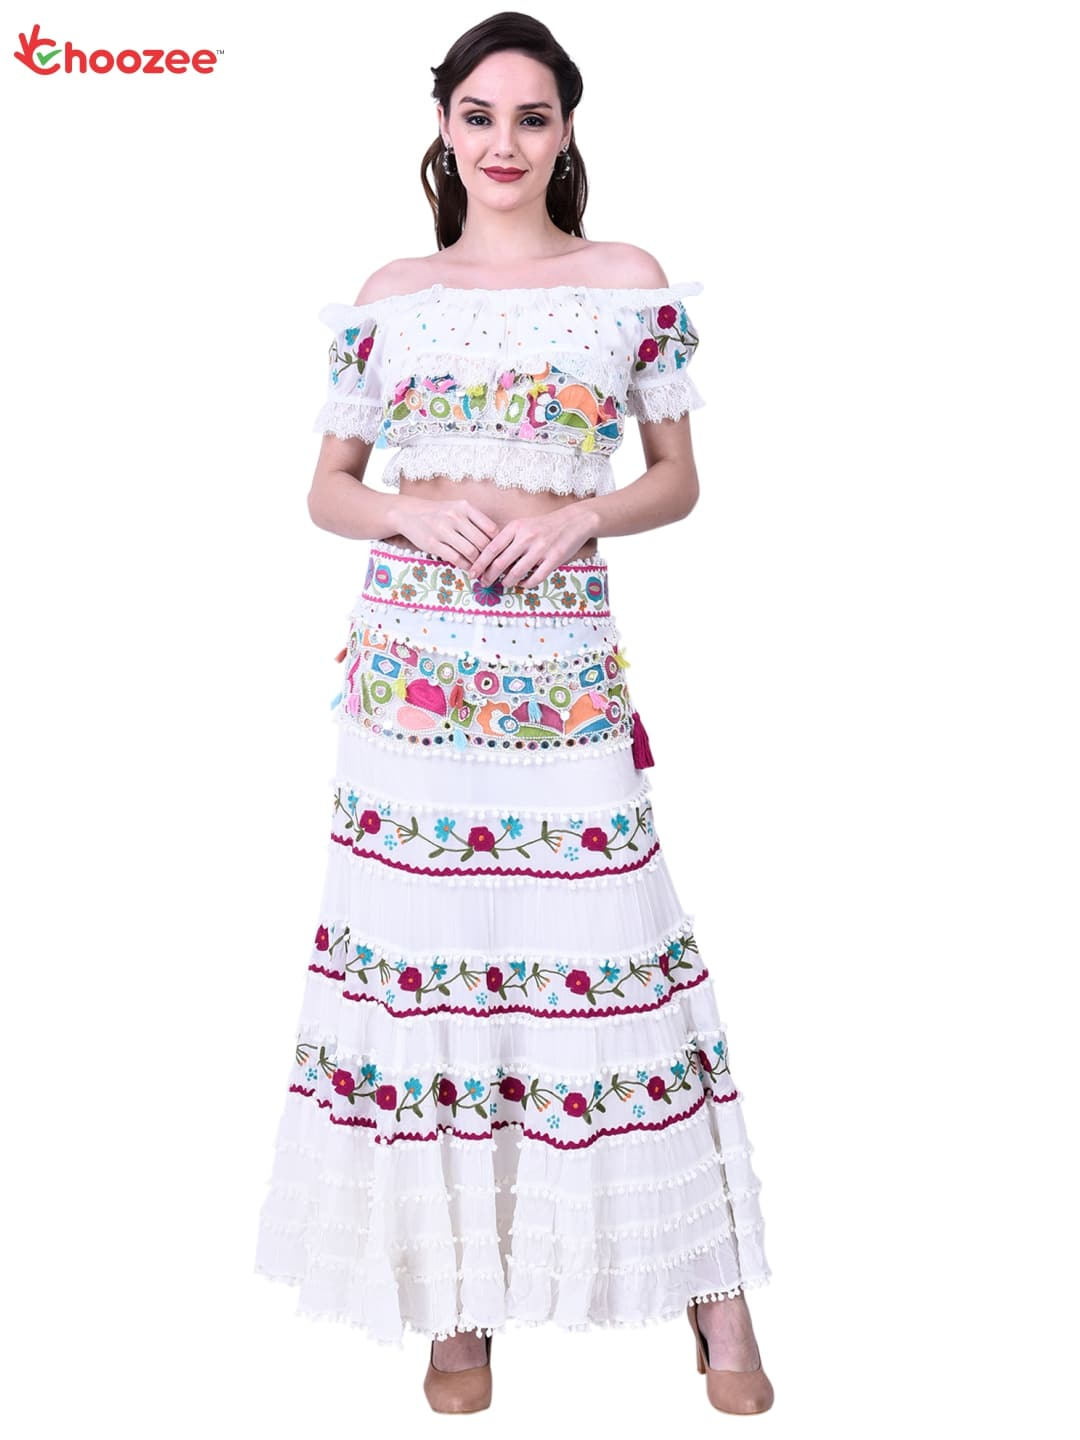 Victoria Skirt Blouse (Lehenga Choli) with Hand Embroidery